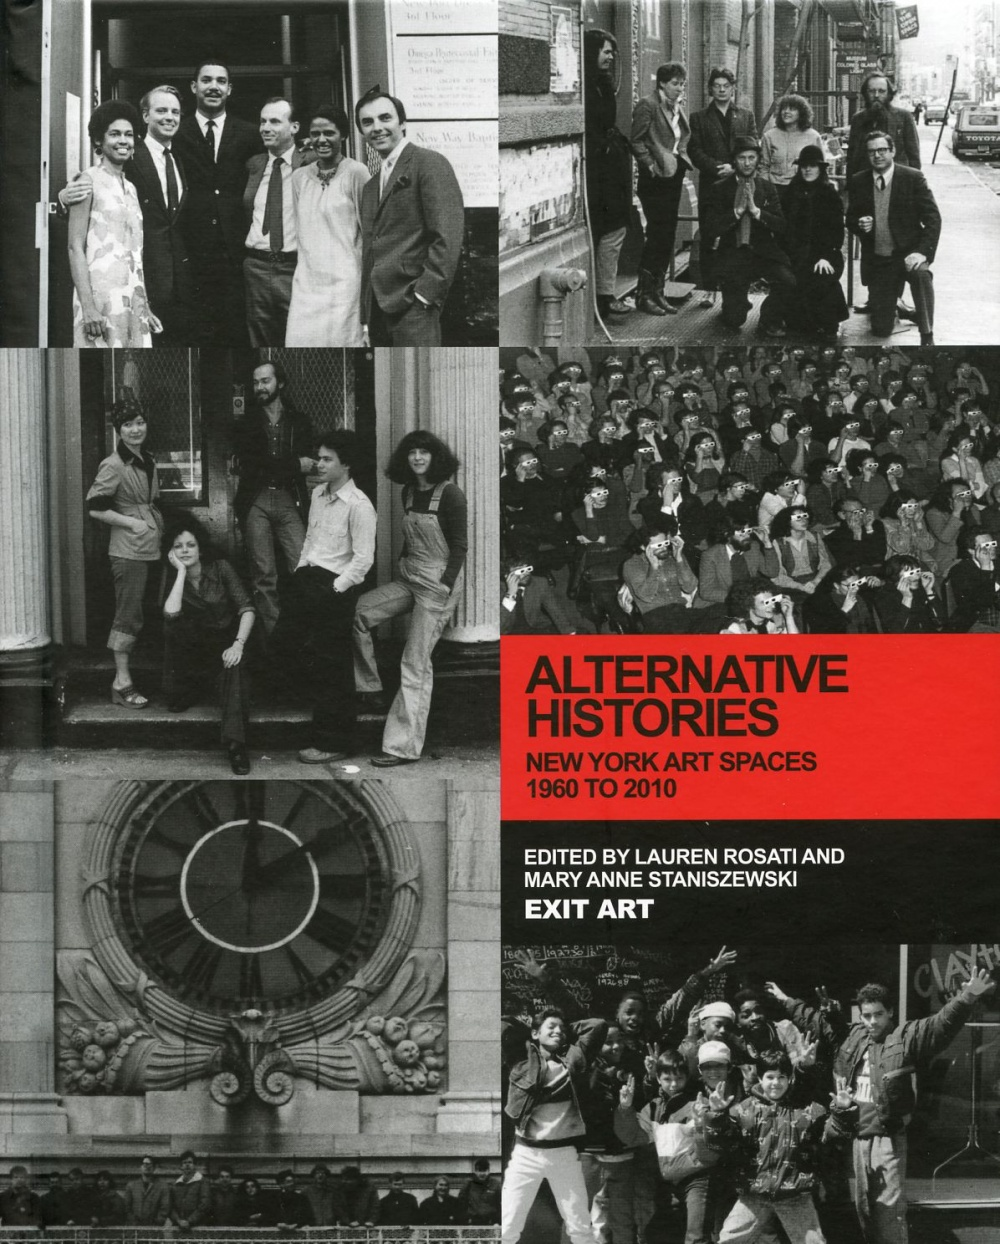 Alternative Histories: New York Art Spaces 1960 to 2010